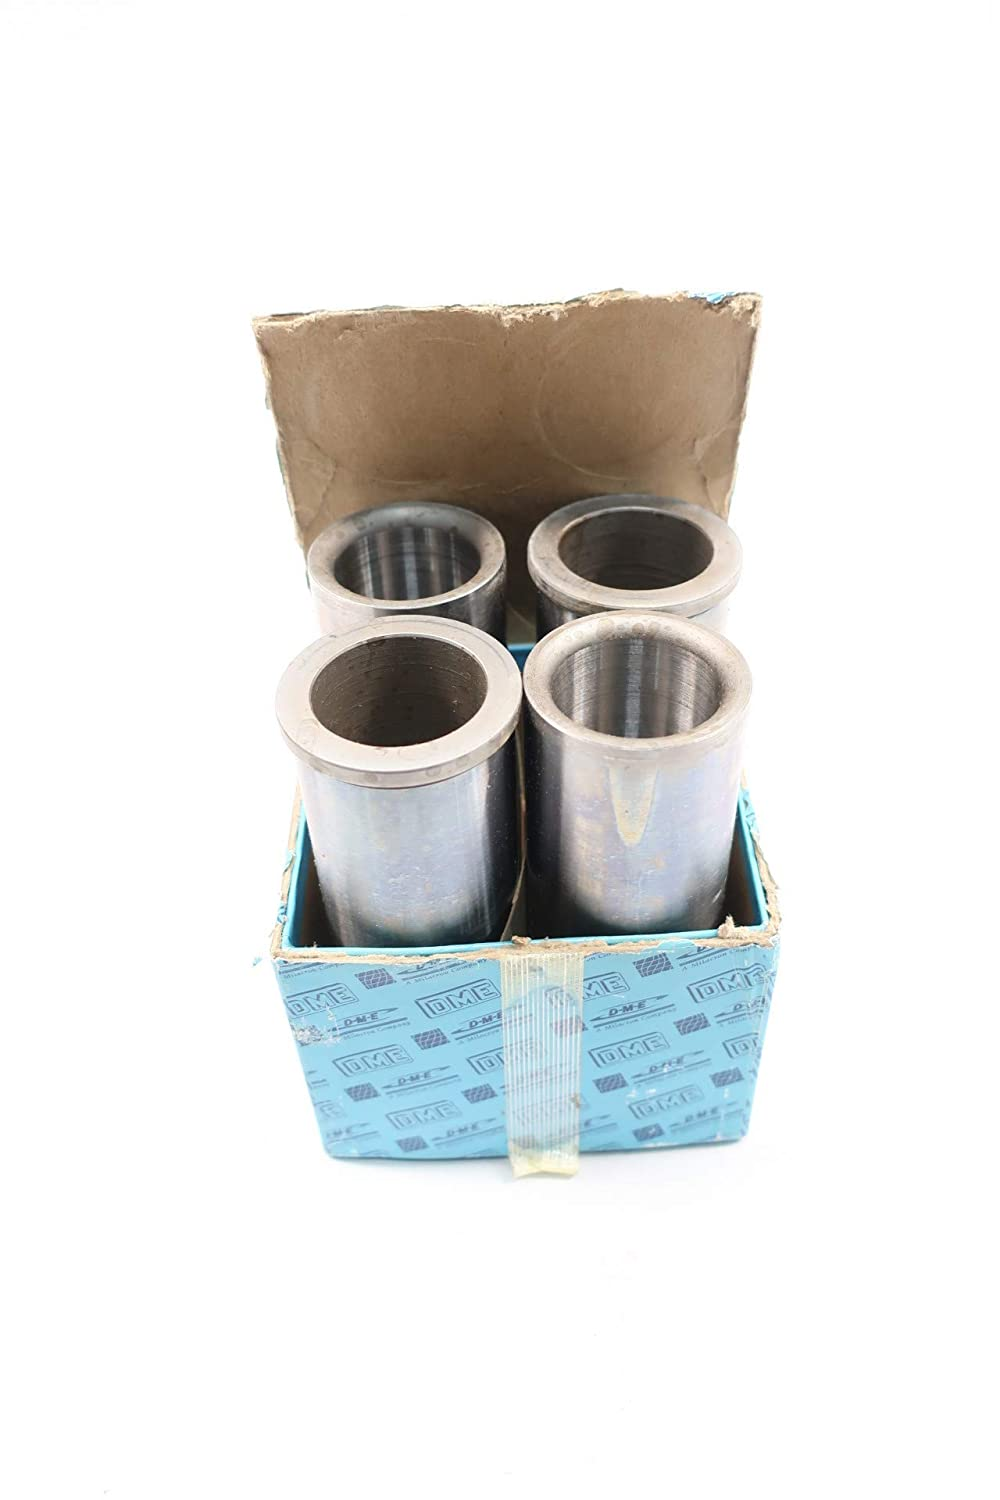 Box of 4 Genuine Choice DME 5780 Shoulder Bushing 1-1 2IN 8IN BORE 5-7 Long